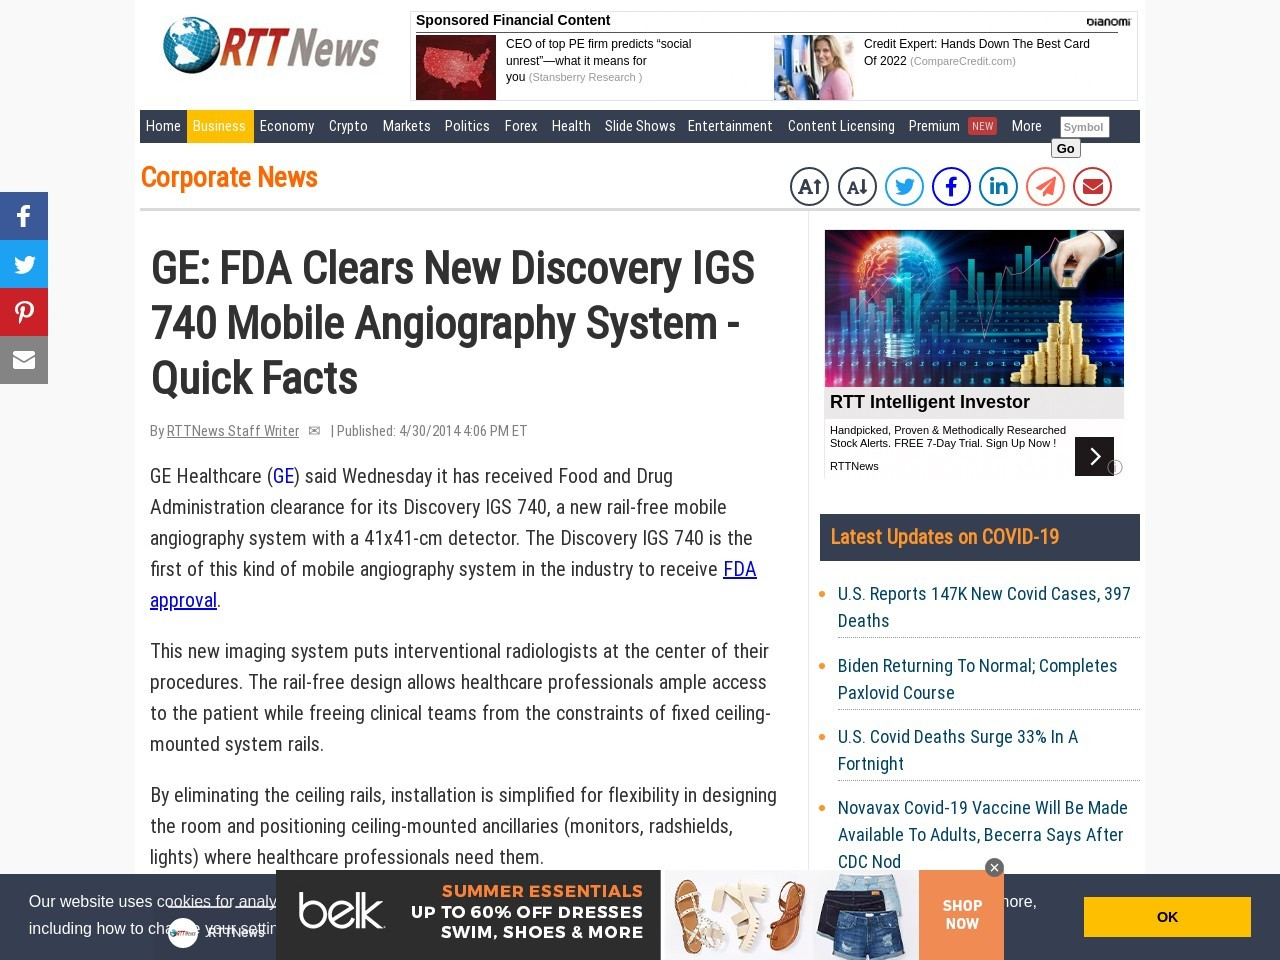 GE: FDA Clears New Discovery IGS 740 Mobile Angiography System – Quick Facts